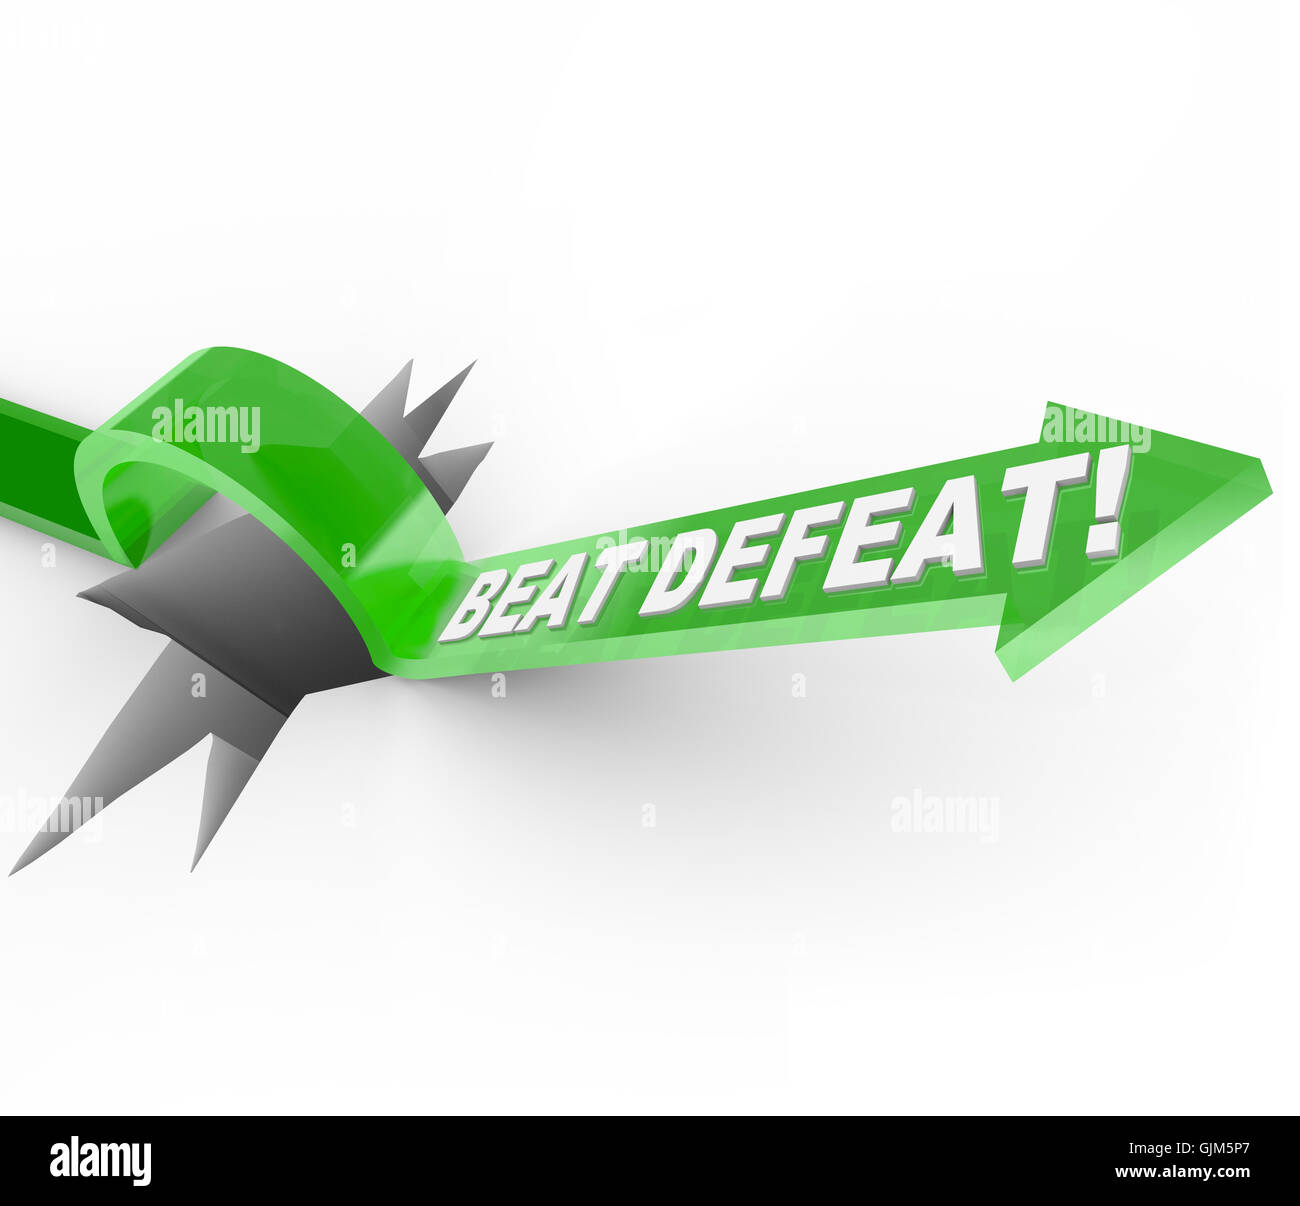 Beat Defeat - Arrow Jumping Over Hole to Overcome Adversity - Stock Image